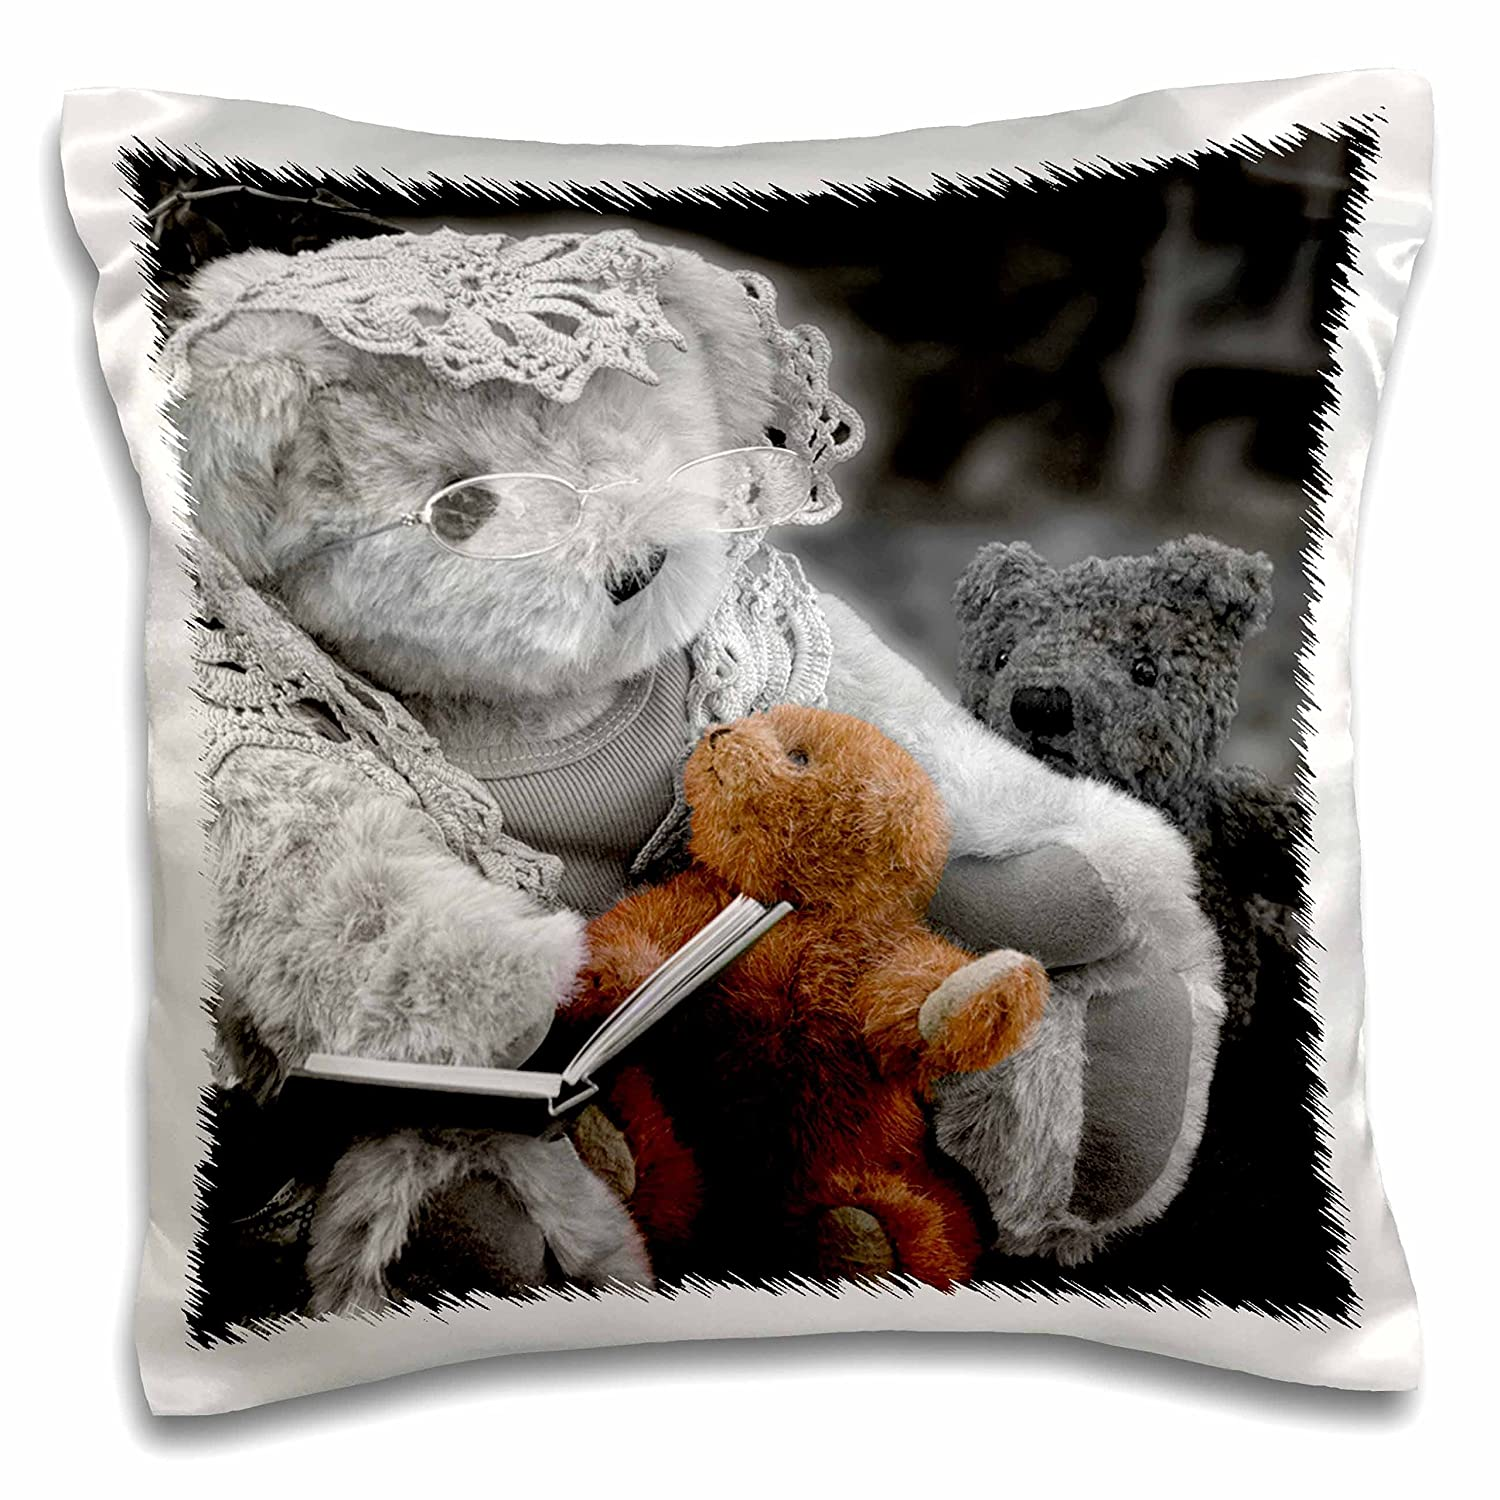 16 by 16-inch 3dRose Grandmother Teddy Bear Reading to Children Pillow Case pc/_164750/_1